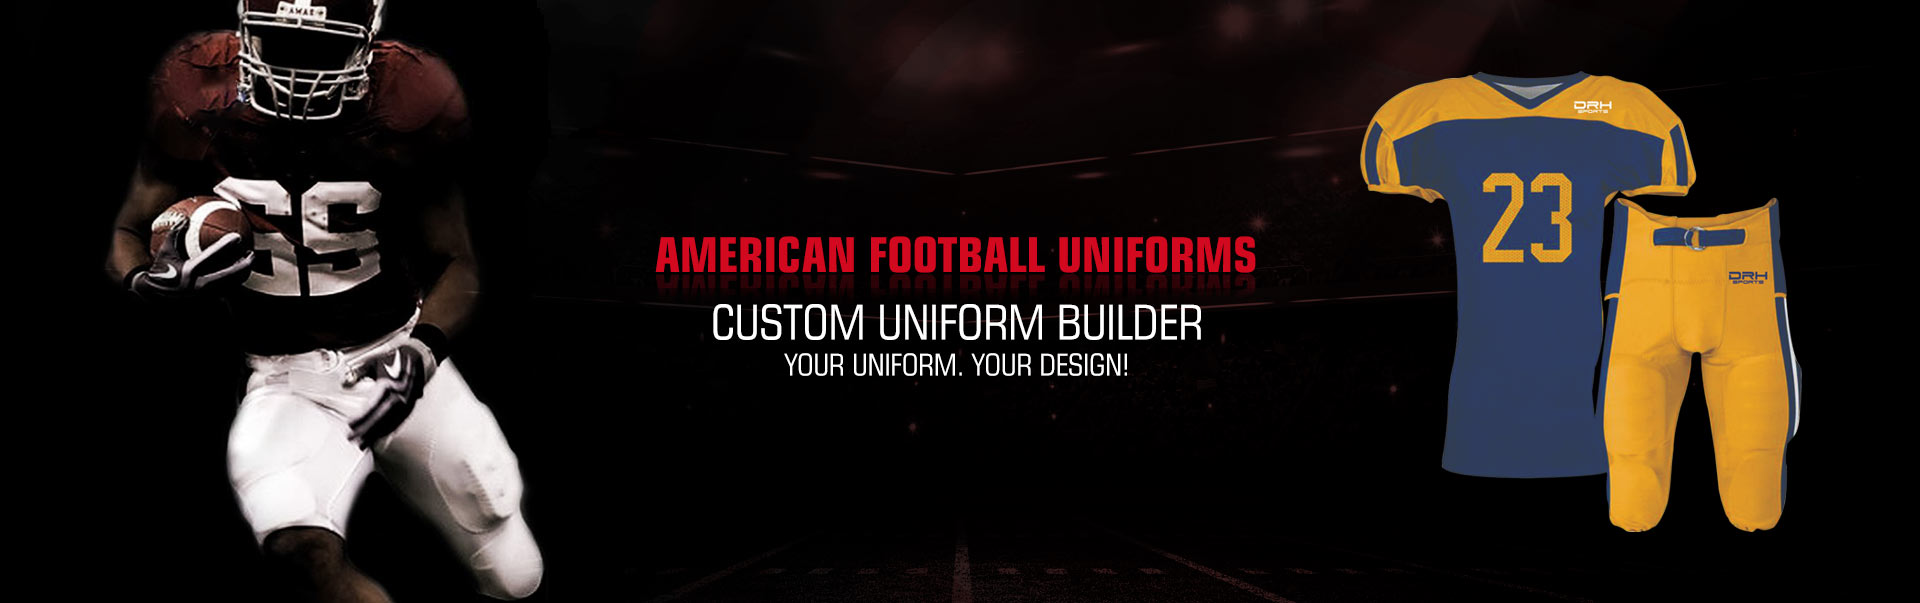 American Football Uniform Wholesaler, Suppliers in Milton